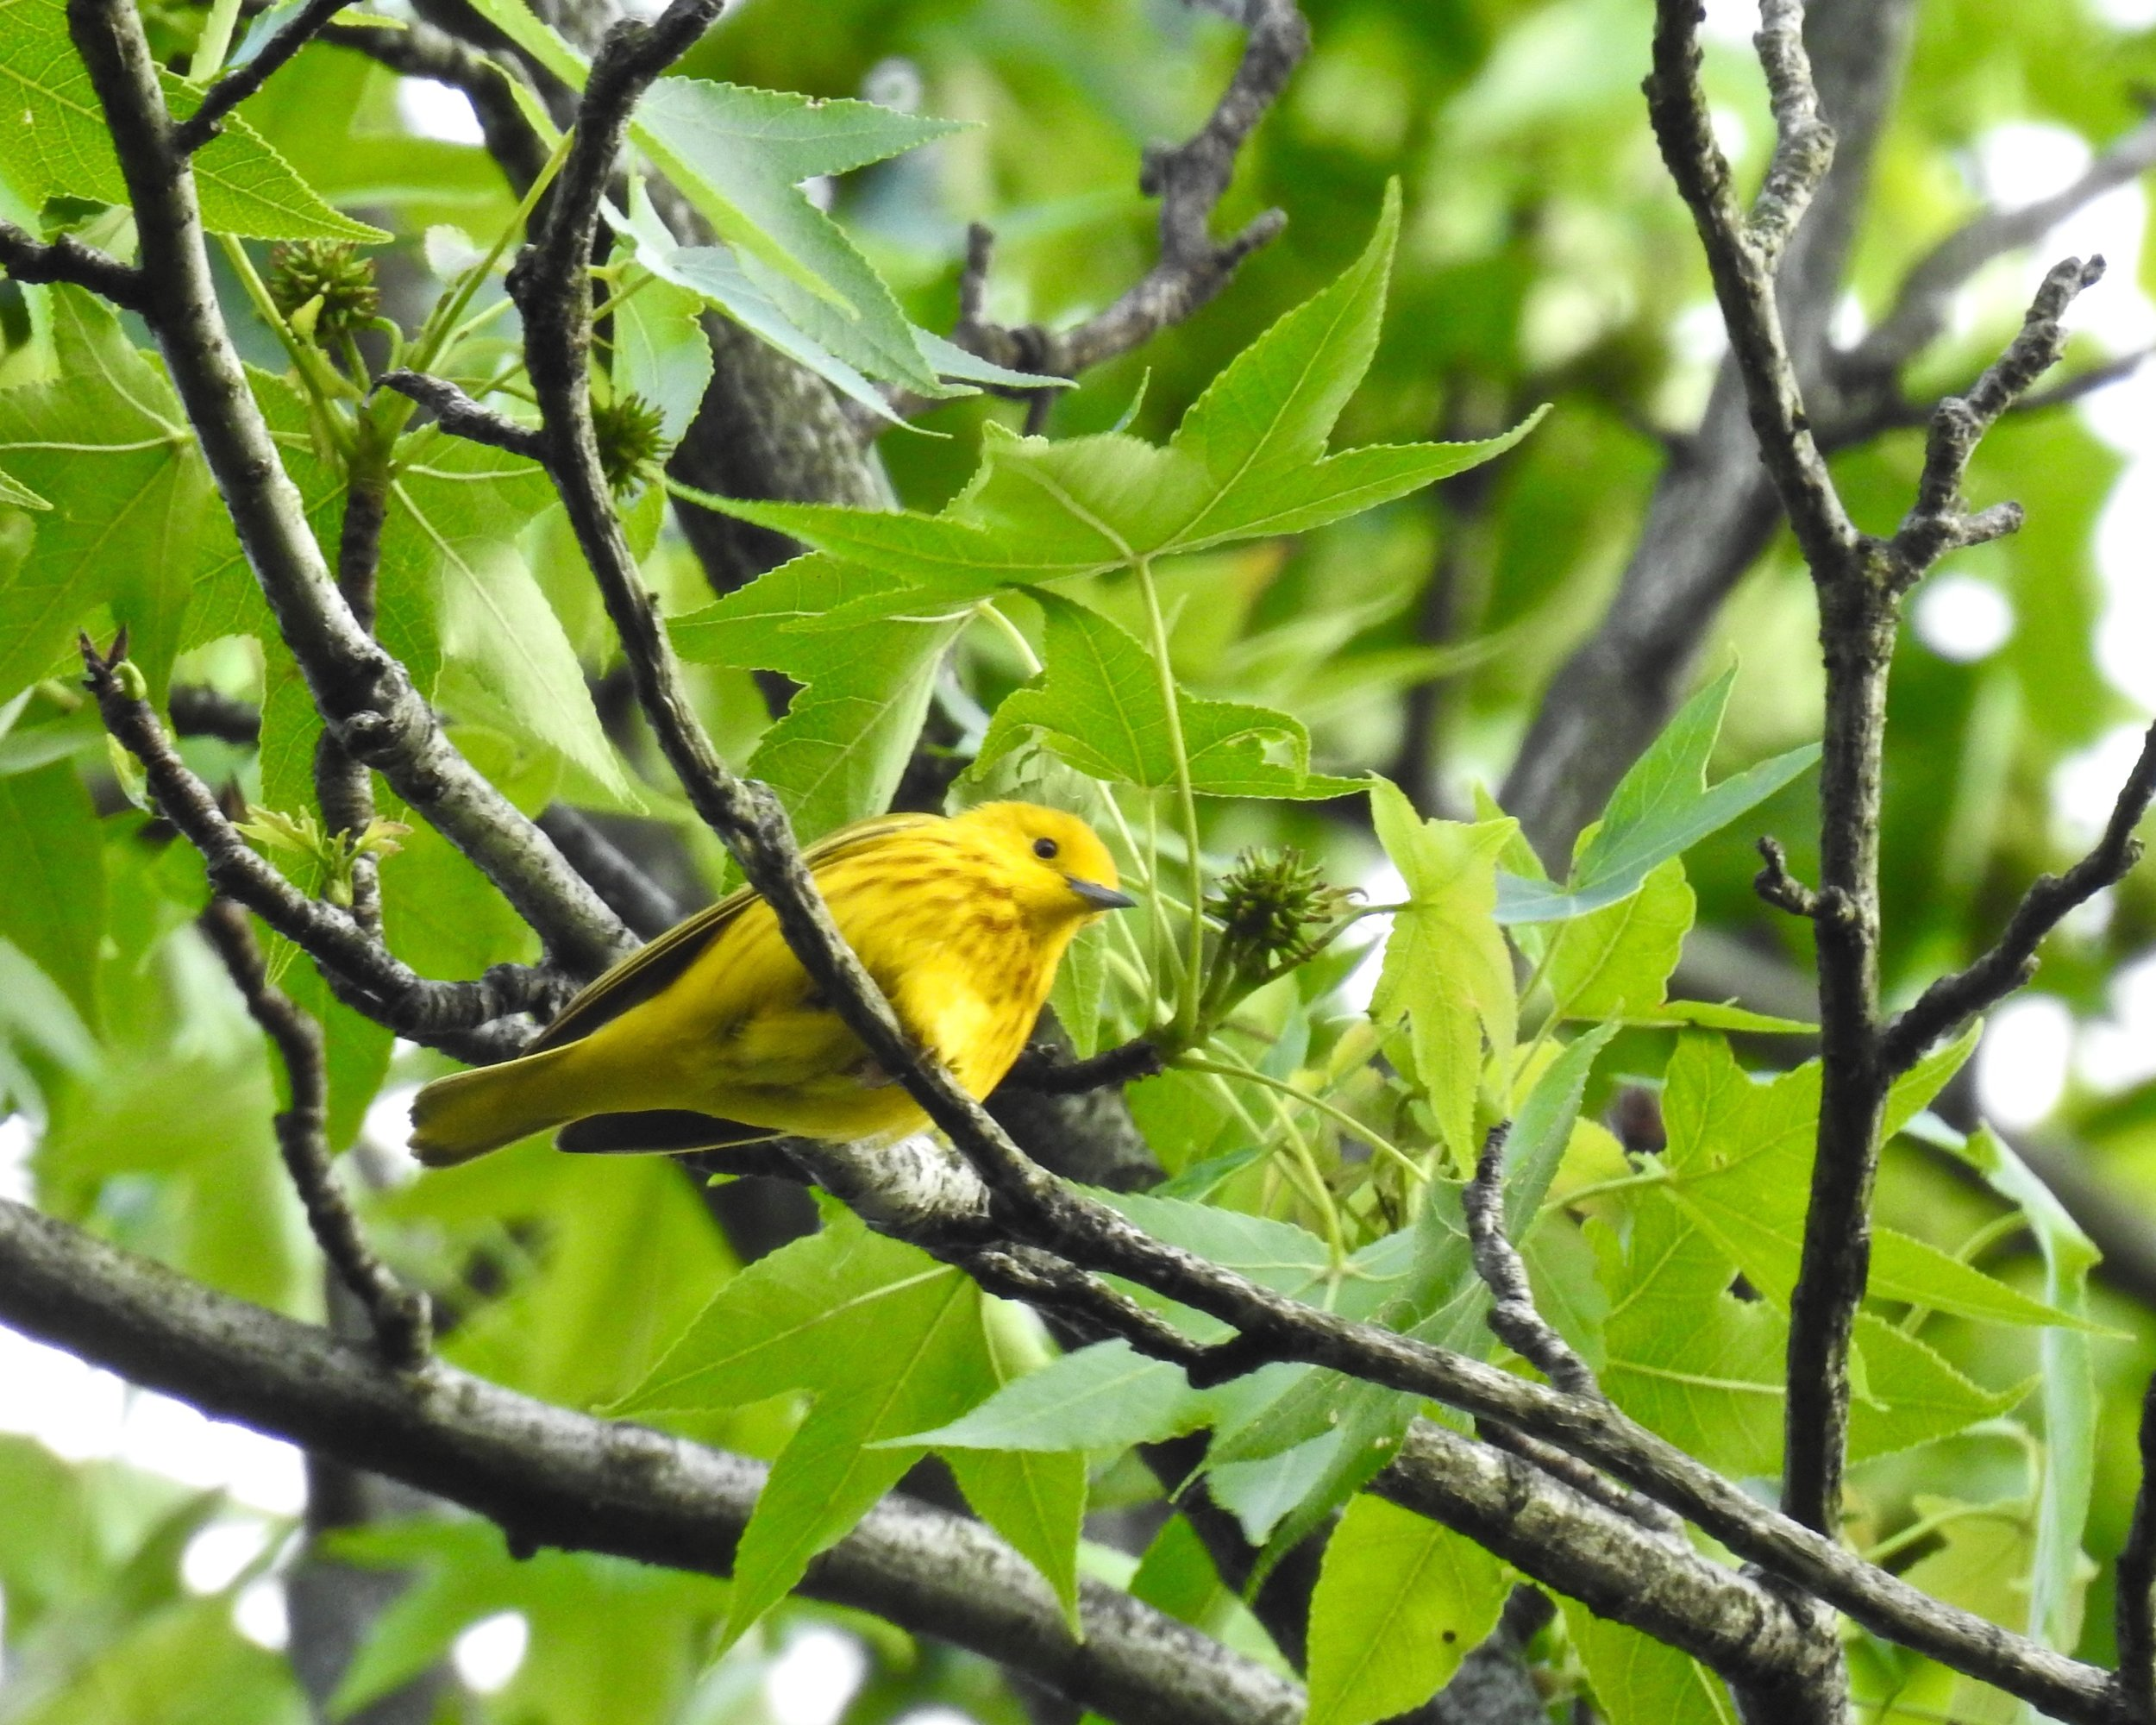 Male Yellow Warbler, photo by Toribird